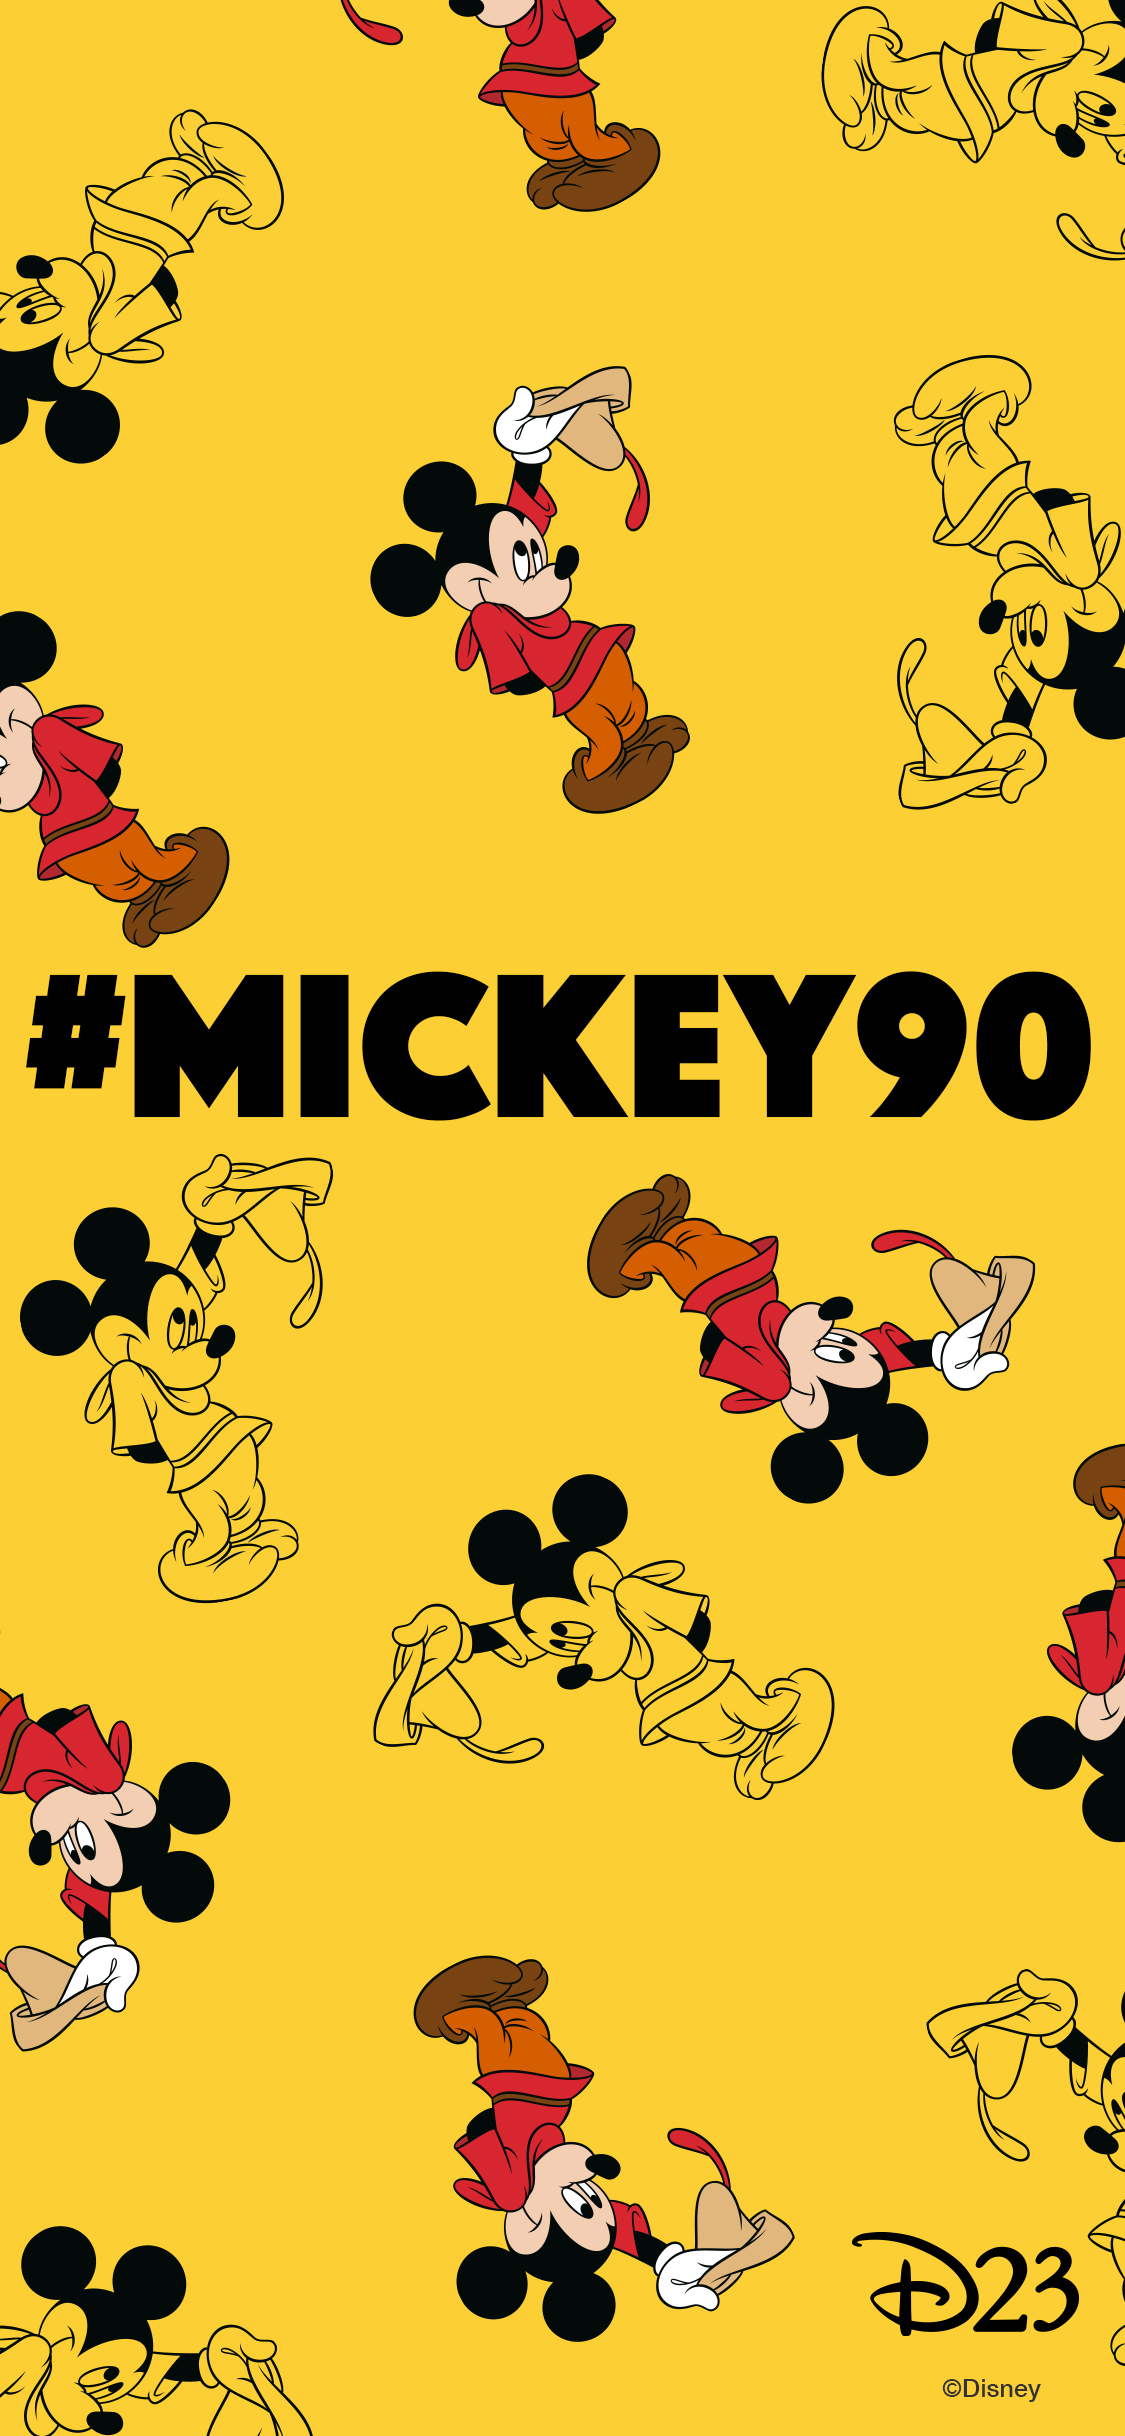 How To Make A Wallpaper App For Iphone 6 Mickey Mouse Phone Wallpapers To Make Your Phone A Mouse